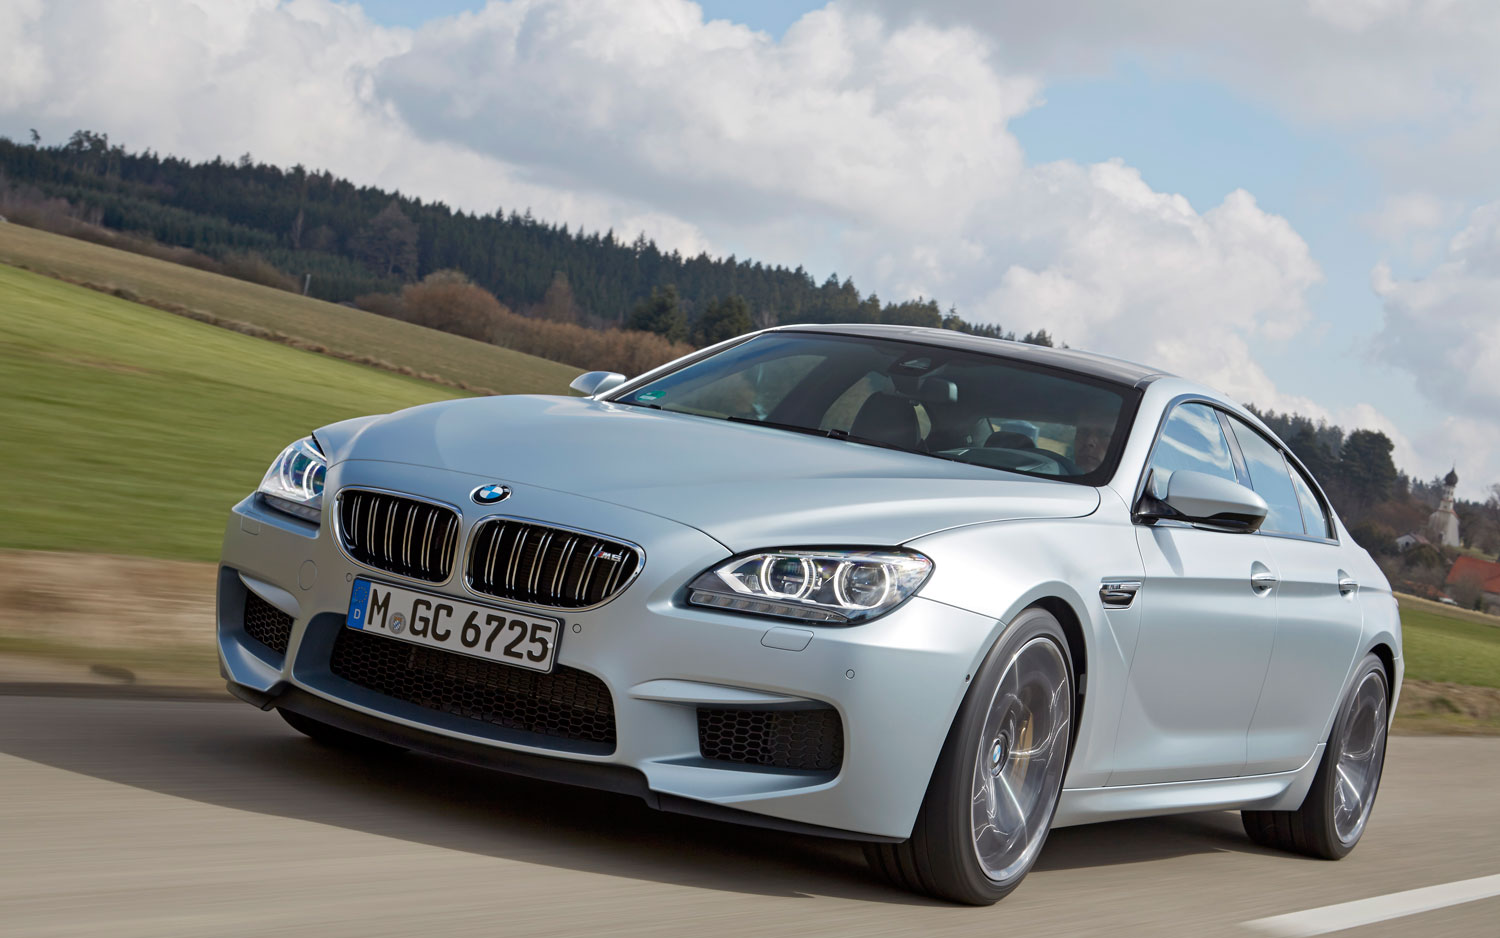 2014 bmw m6 gran coupe first drive automobile magazine. Black Bedroom Furniture Sets. Home Design Ideas